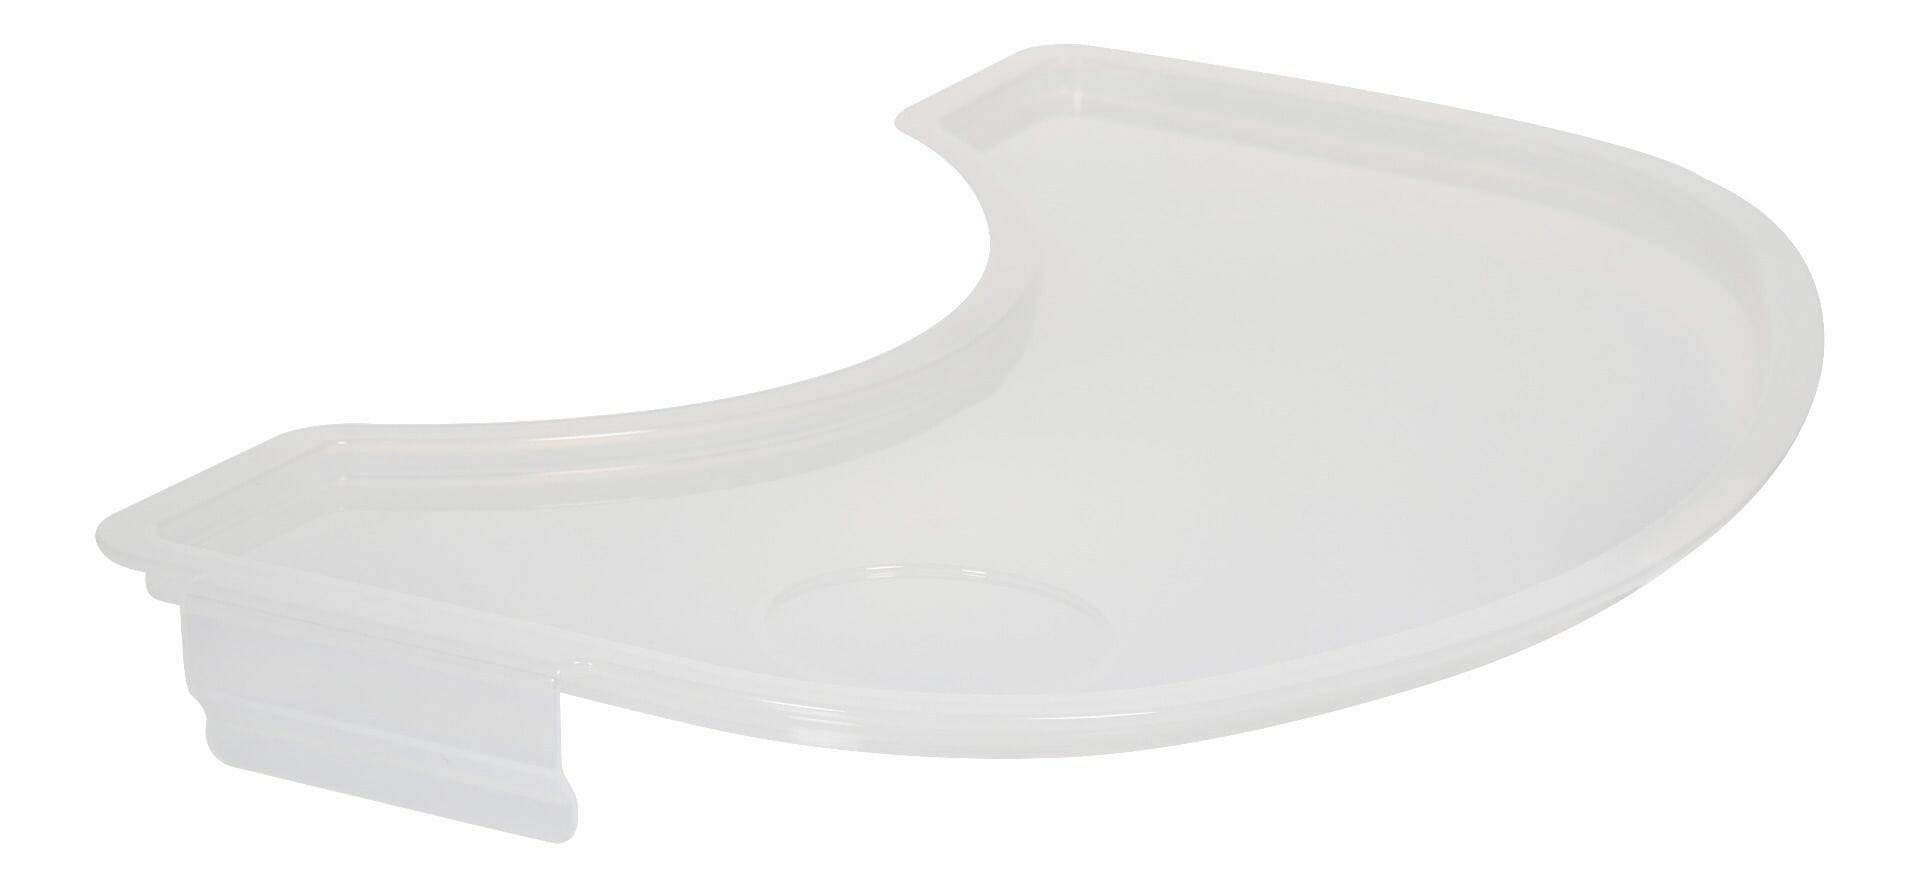 Kidsmill Up Protective Tray Top